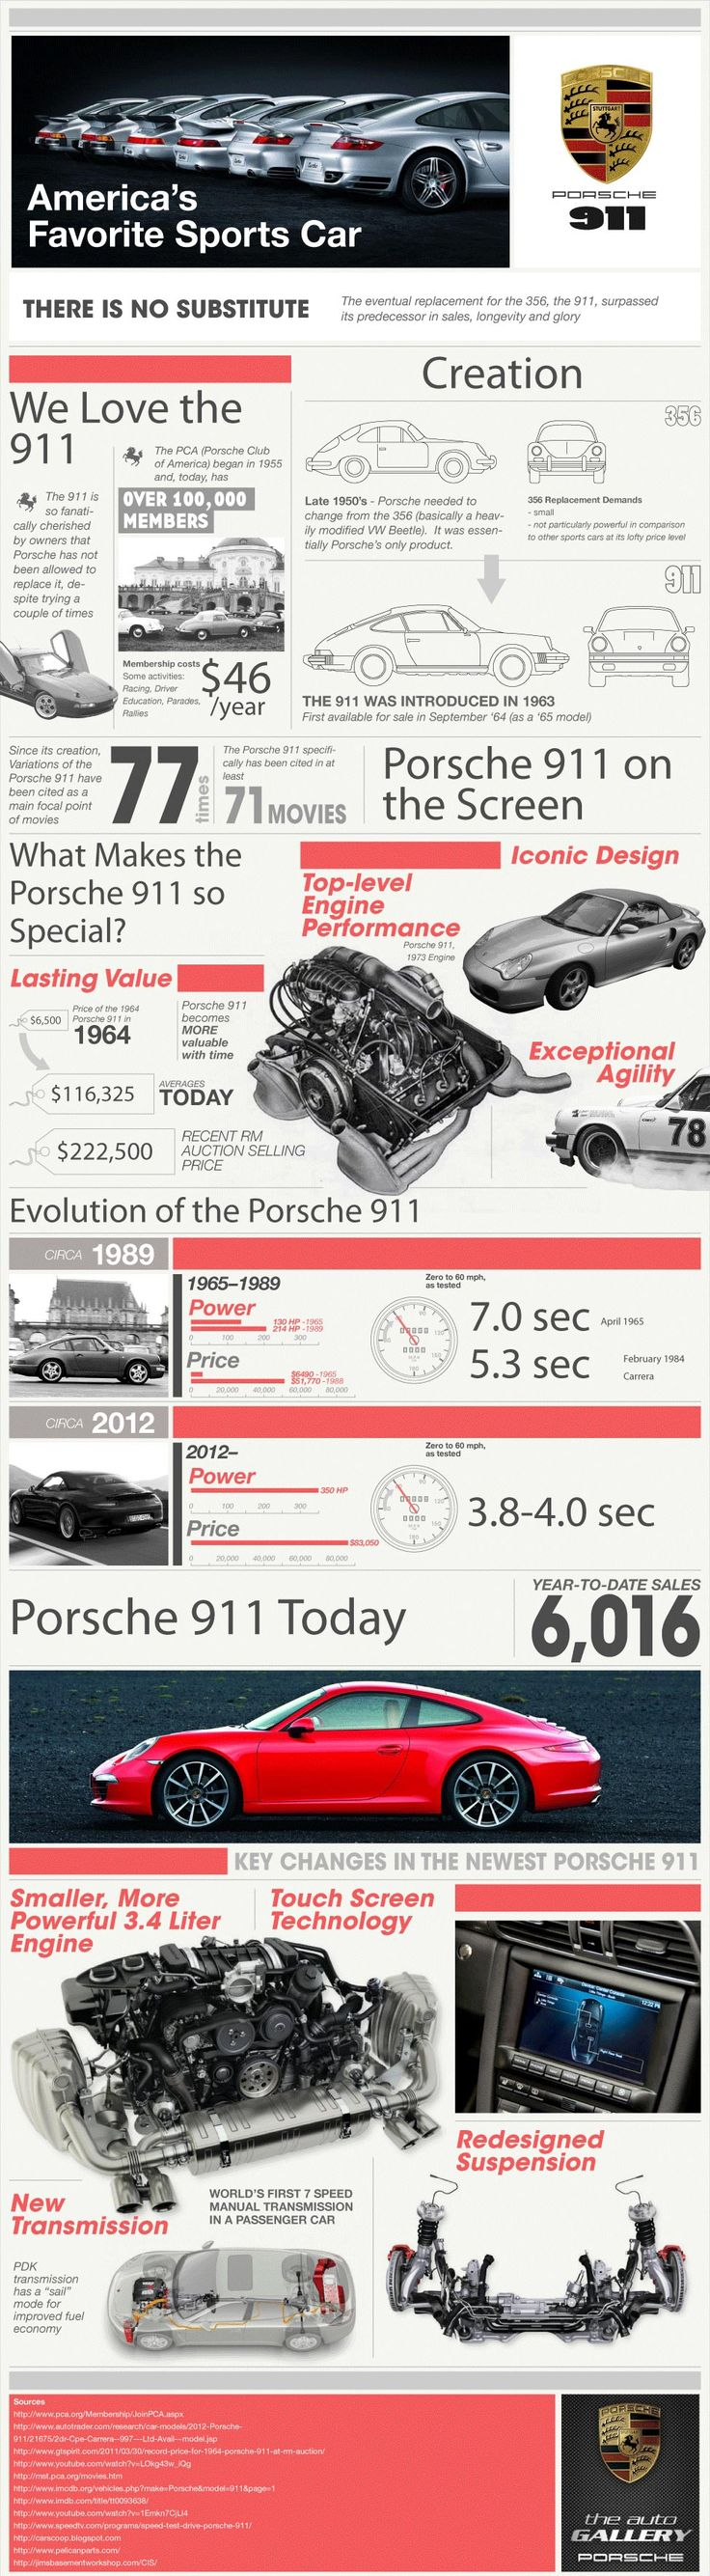 Porsche 911 history infographic is one of the best infographics created in the category check out porsche 911 history now